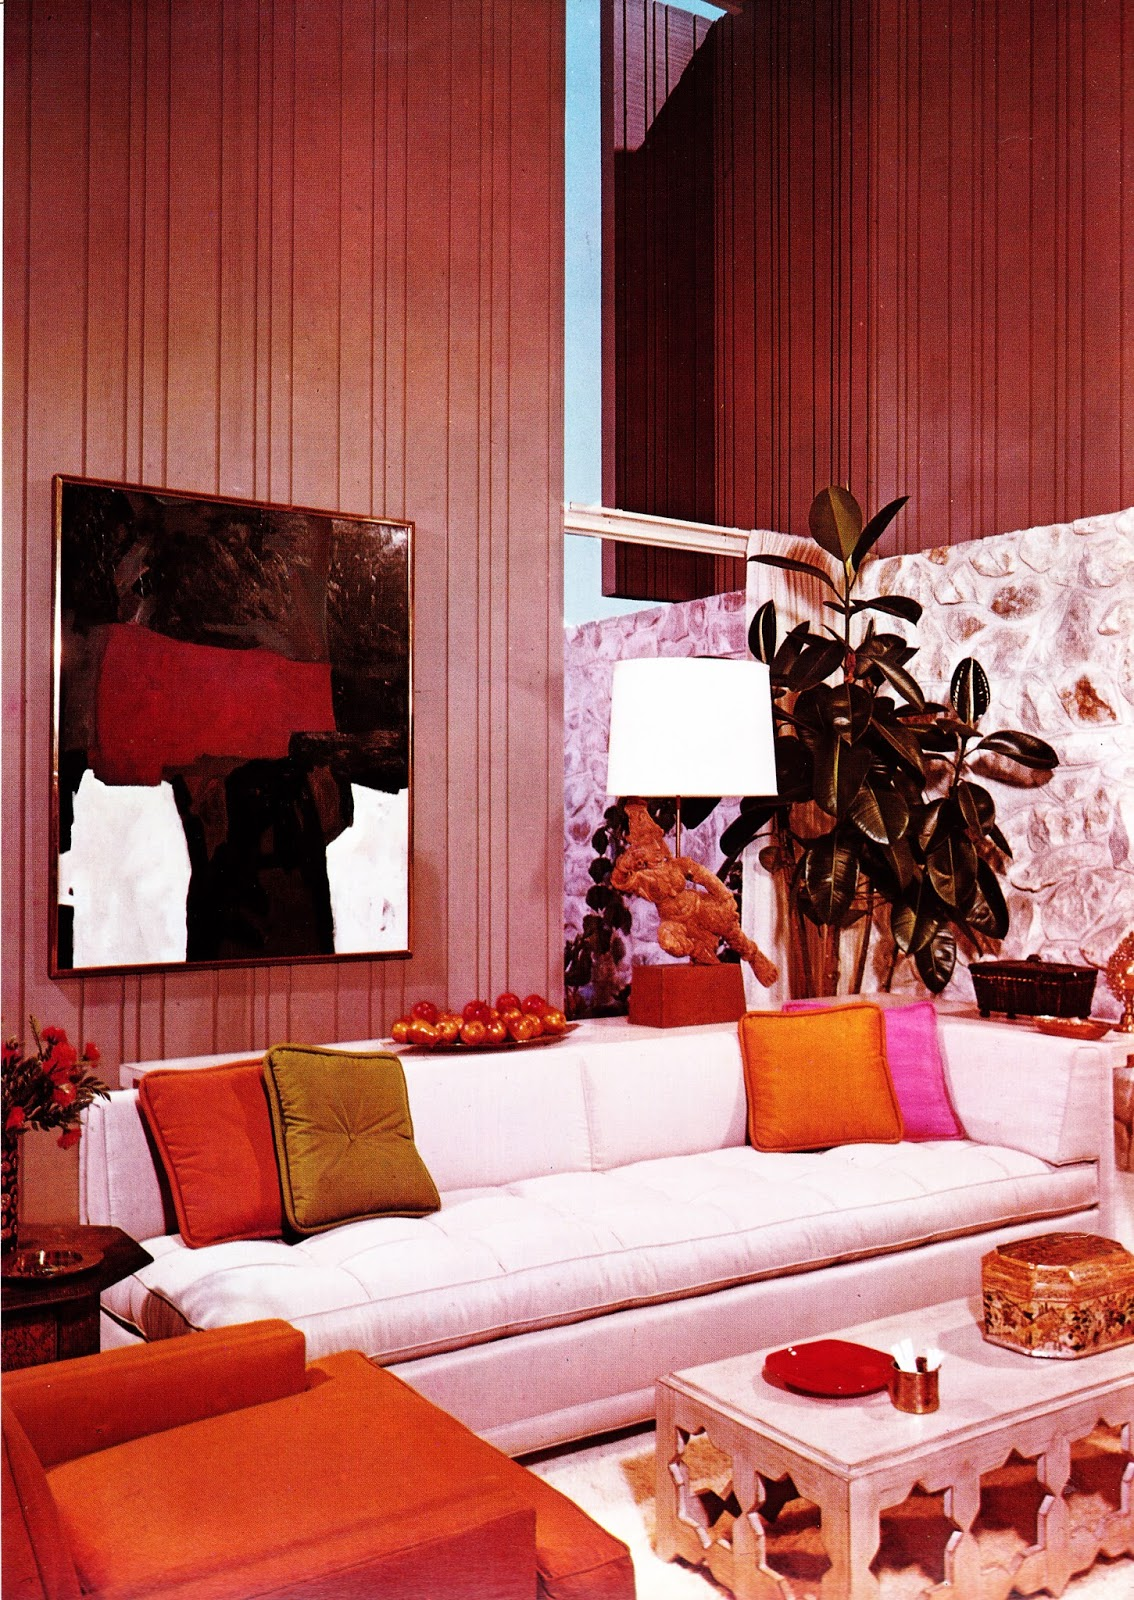 1960s Interior Dcor The Decade of Psychedelia Gave Rise